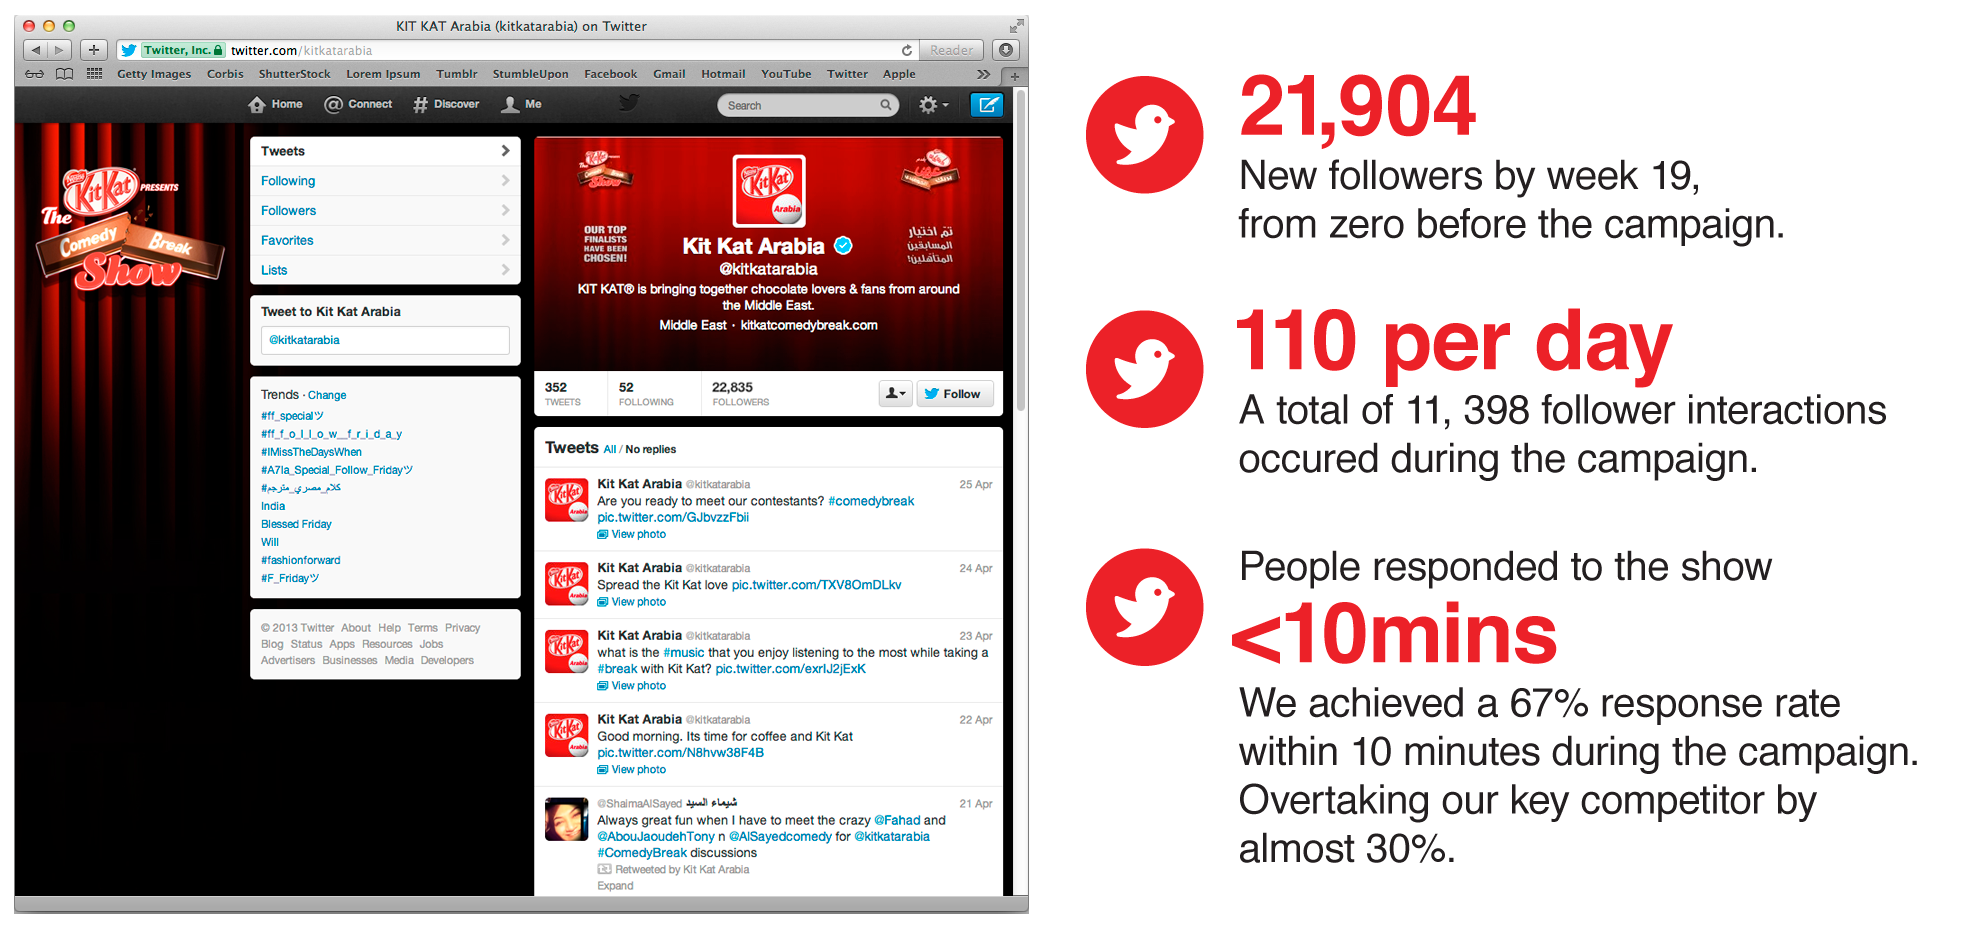 We made the KIT KAT Twitter Page the fastest growing page in a short time.